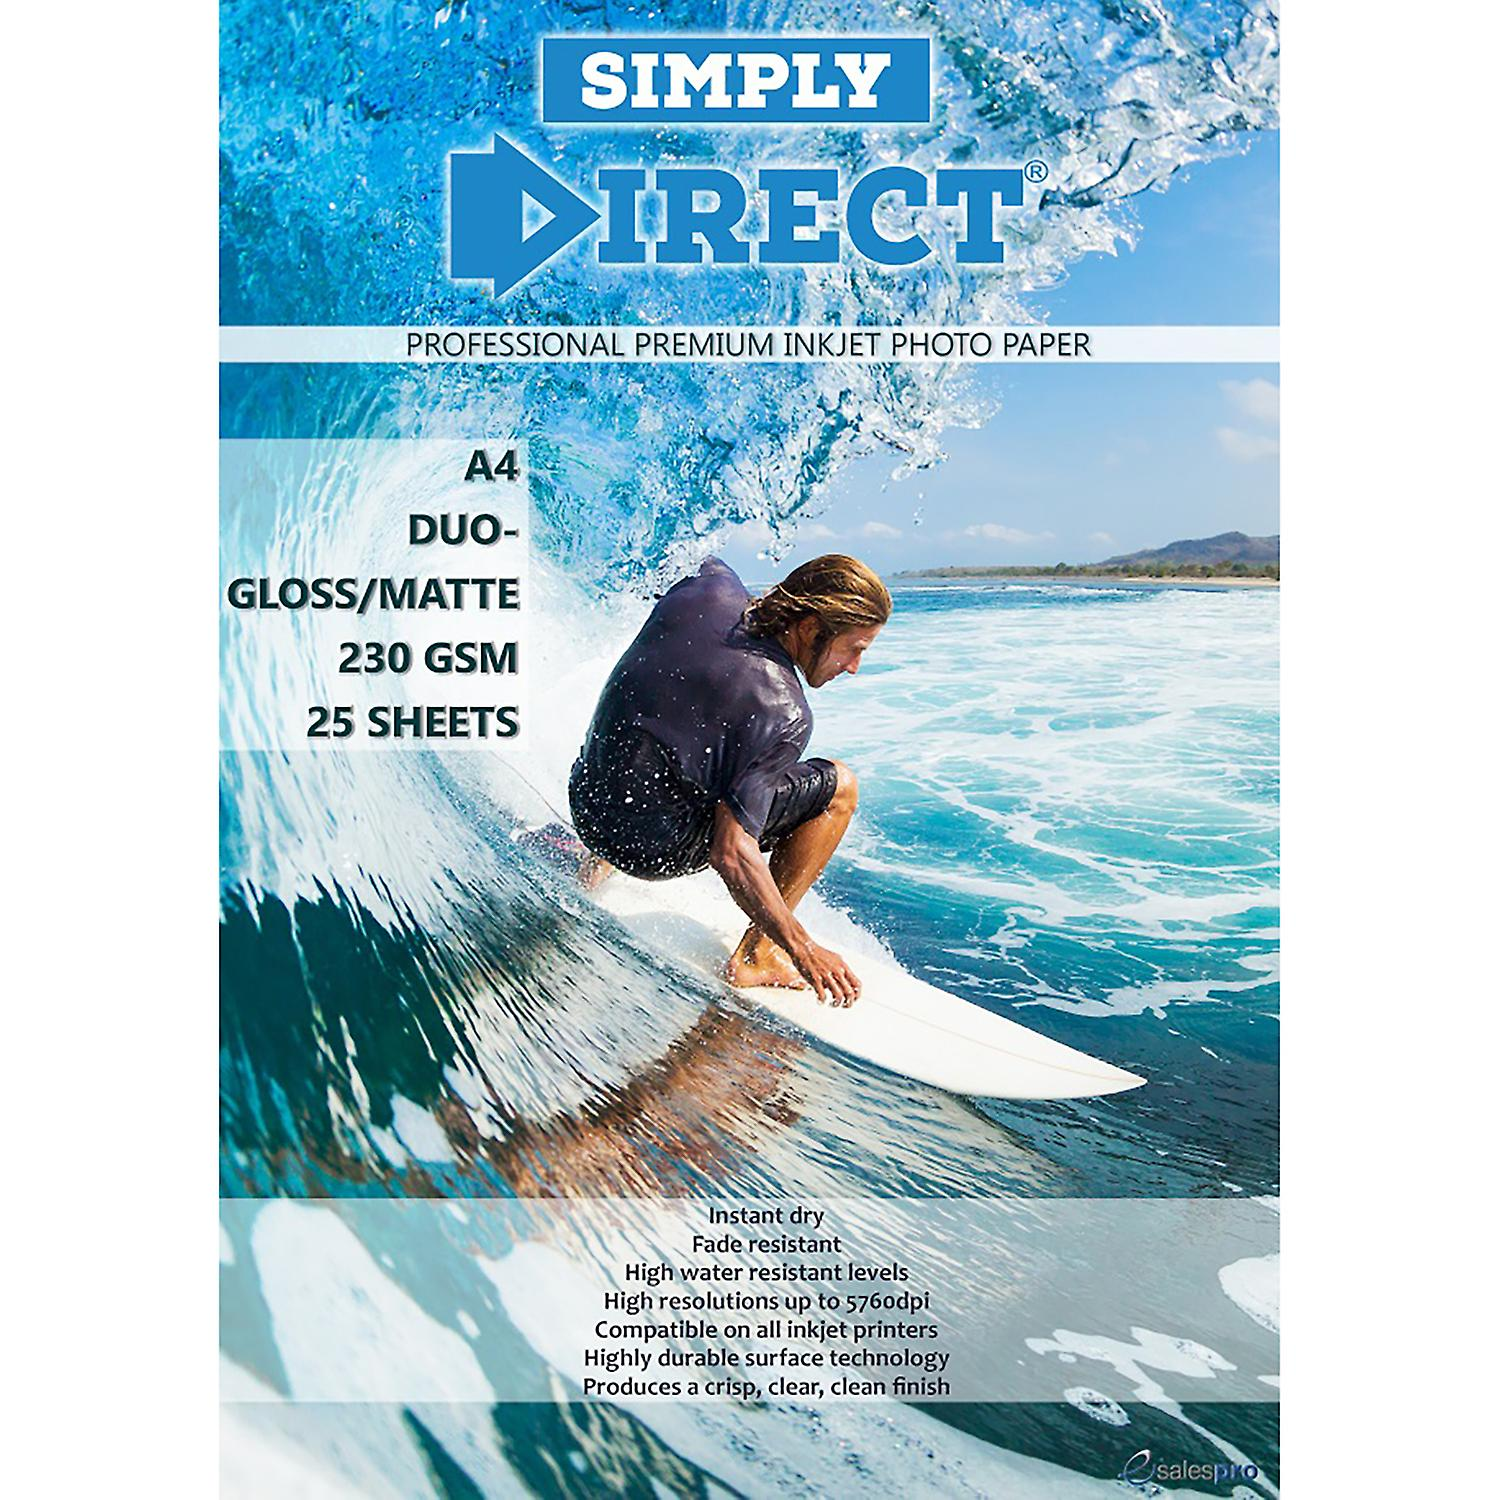 25 x Simply Direct A4 Duo Gloss / Matte Inkjet FSC Photo Printing Paper - 230gsm - Professional Premium Photographic Paper